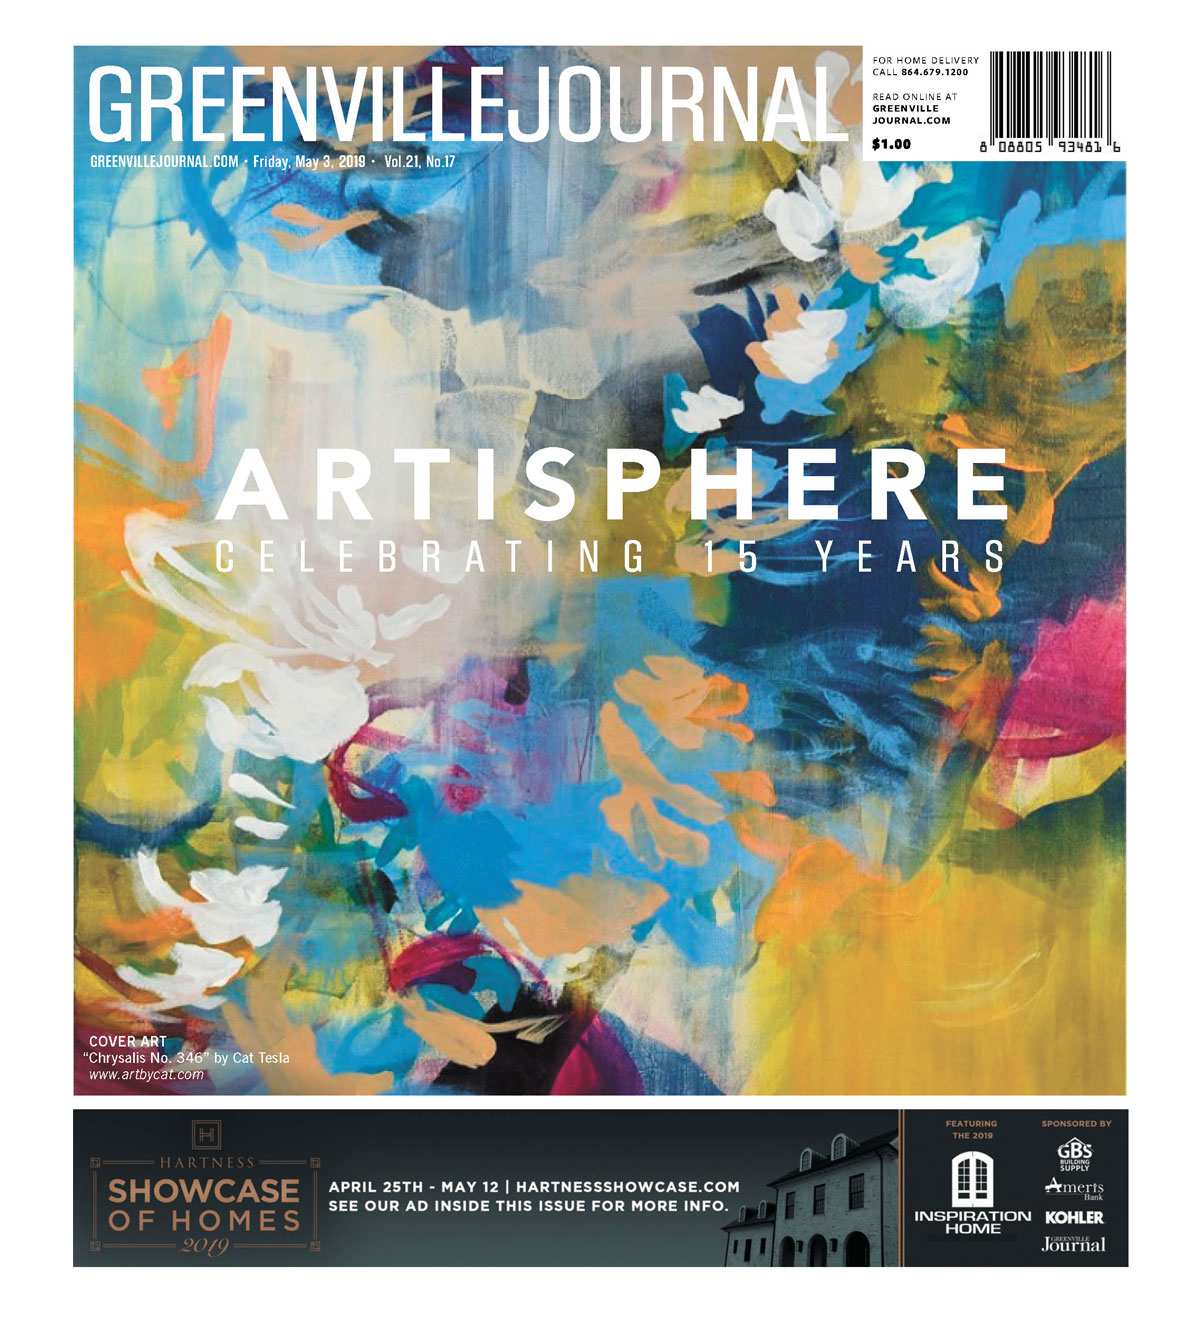 Greenville Journal Cover May 2 2019